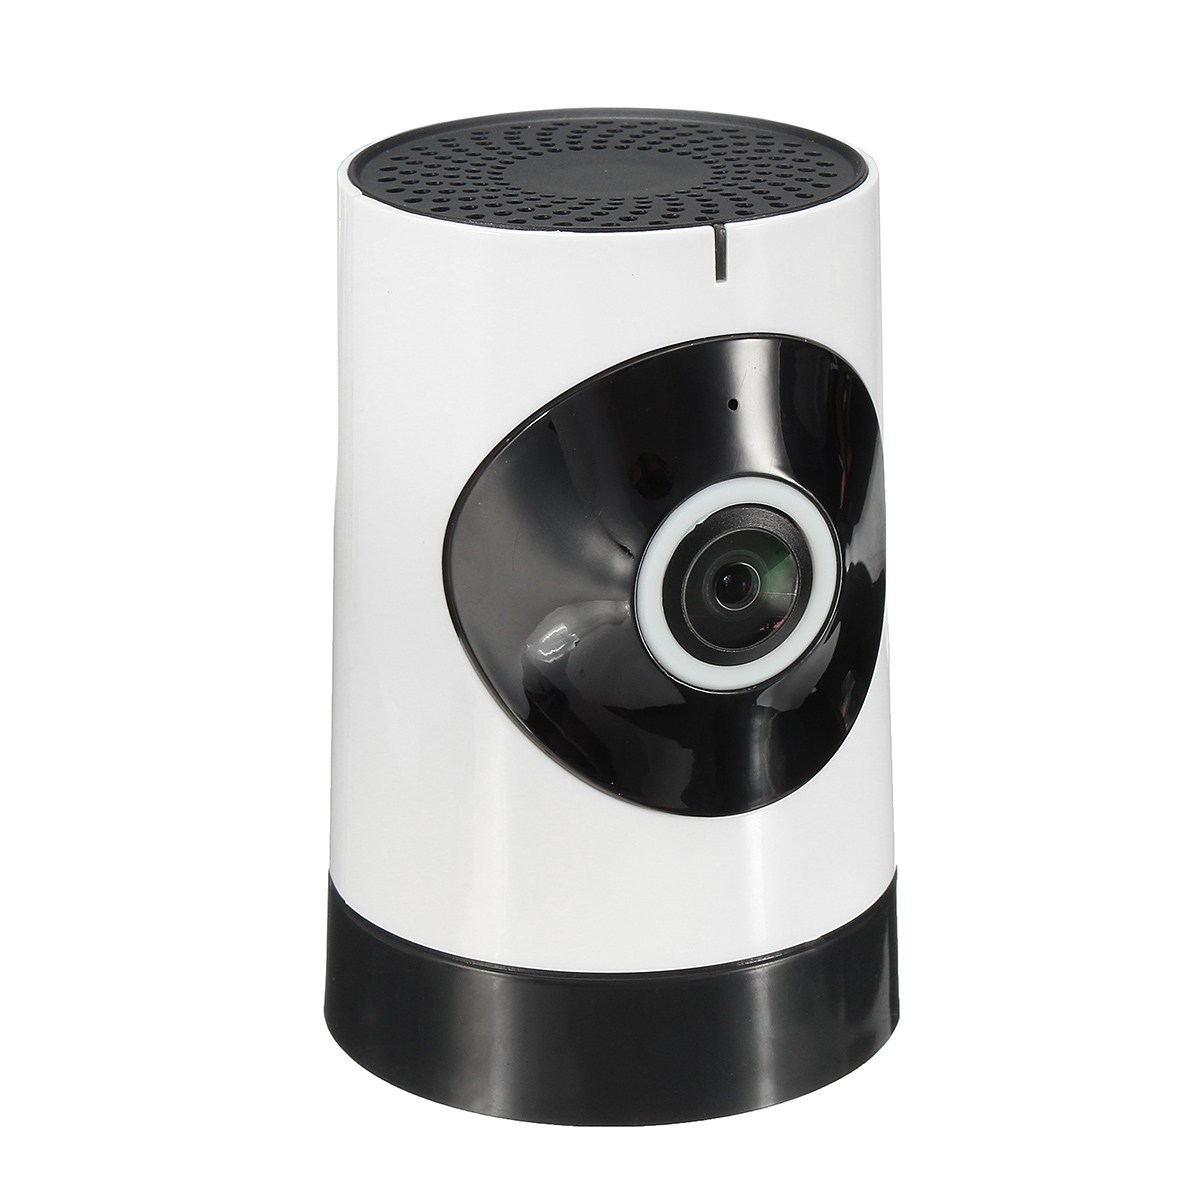 Safurance HD 720P Wireless WiFi IP Camera IR Night Vision Fisheye Webcam CCTV Security Cam Home Security<br>